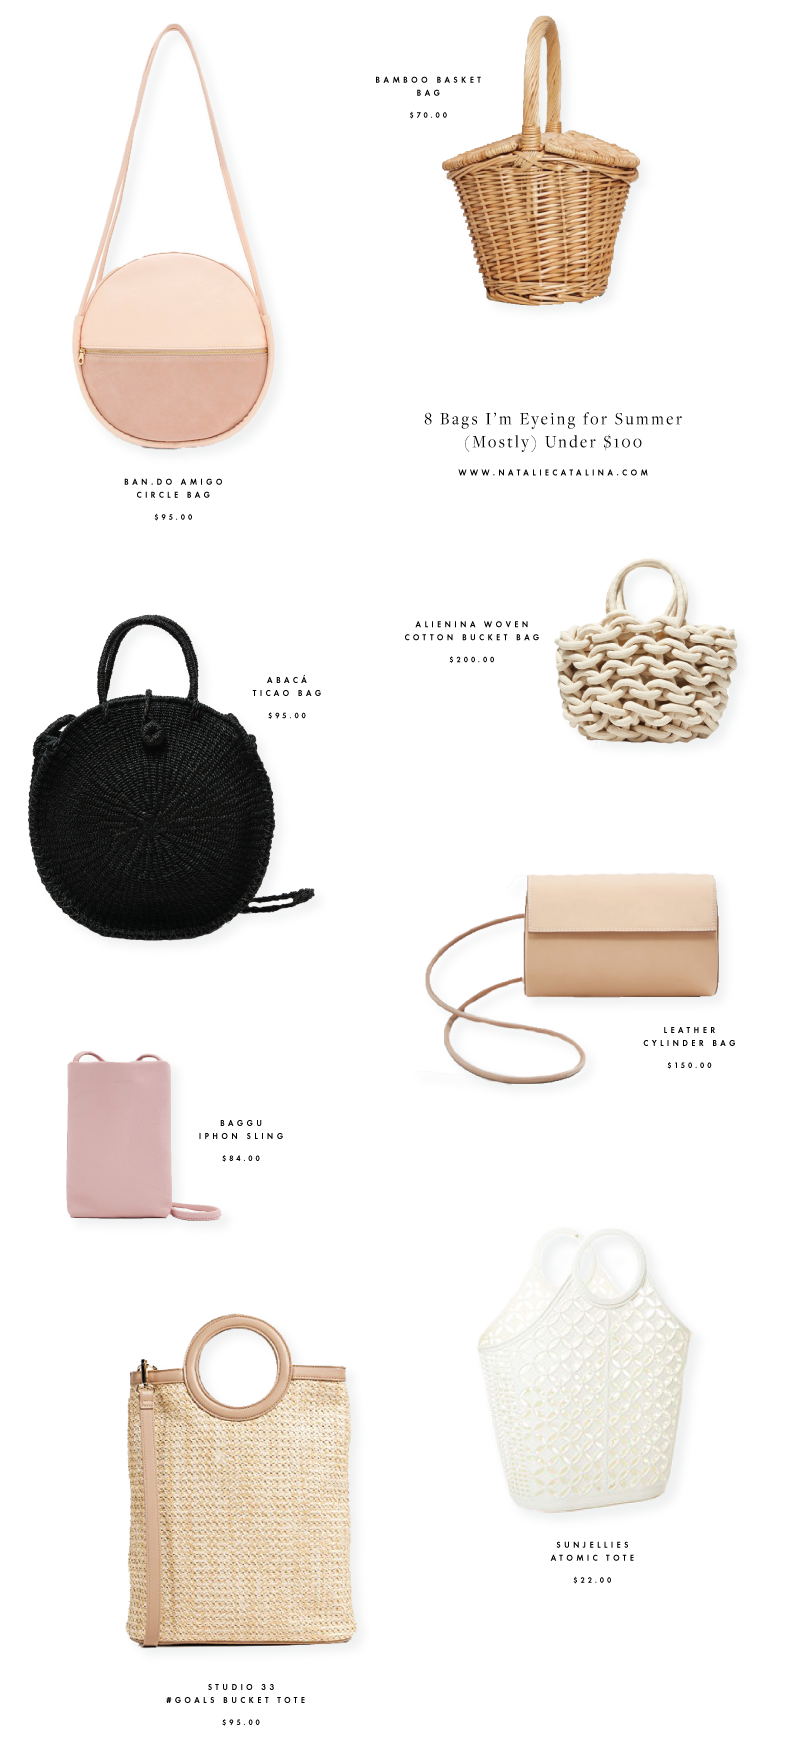 8 Bags I'm Eying for Summer on Natalie Catalina